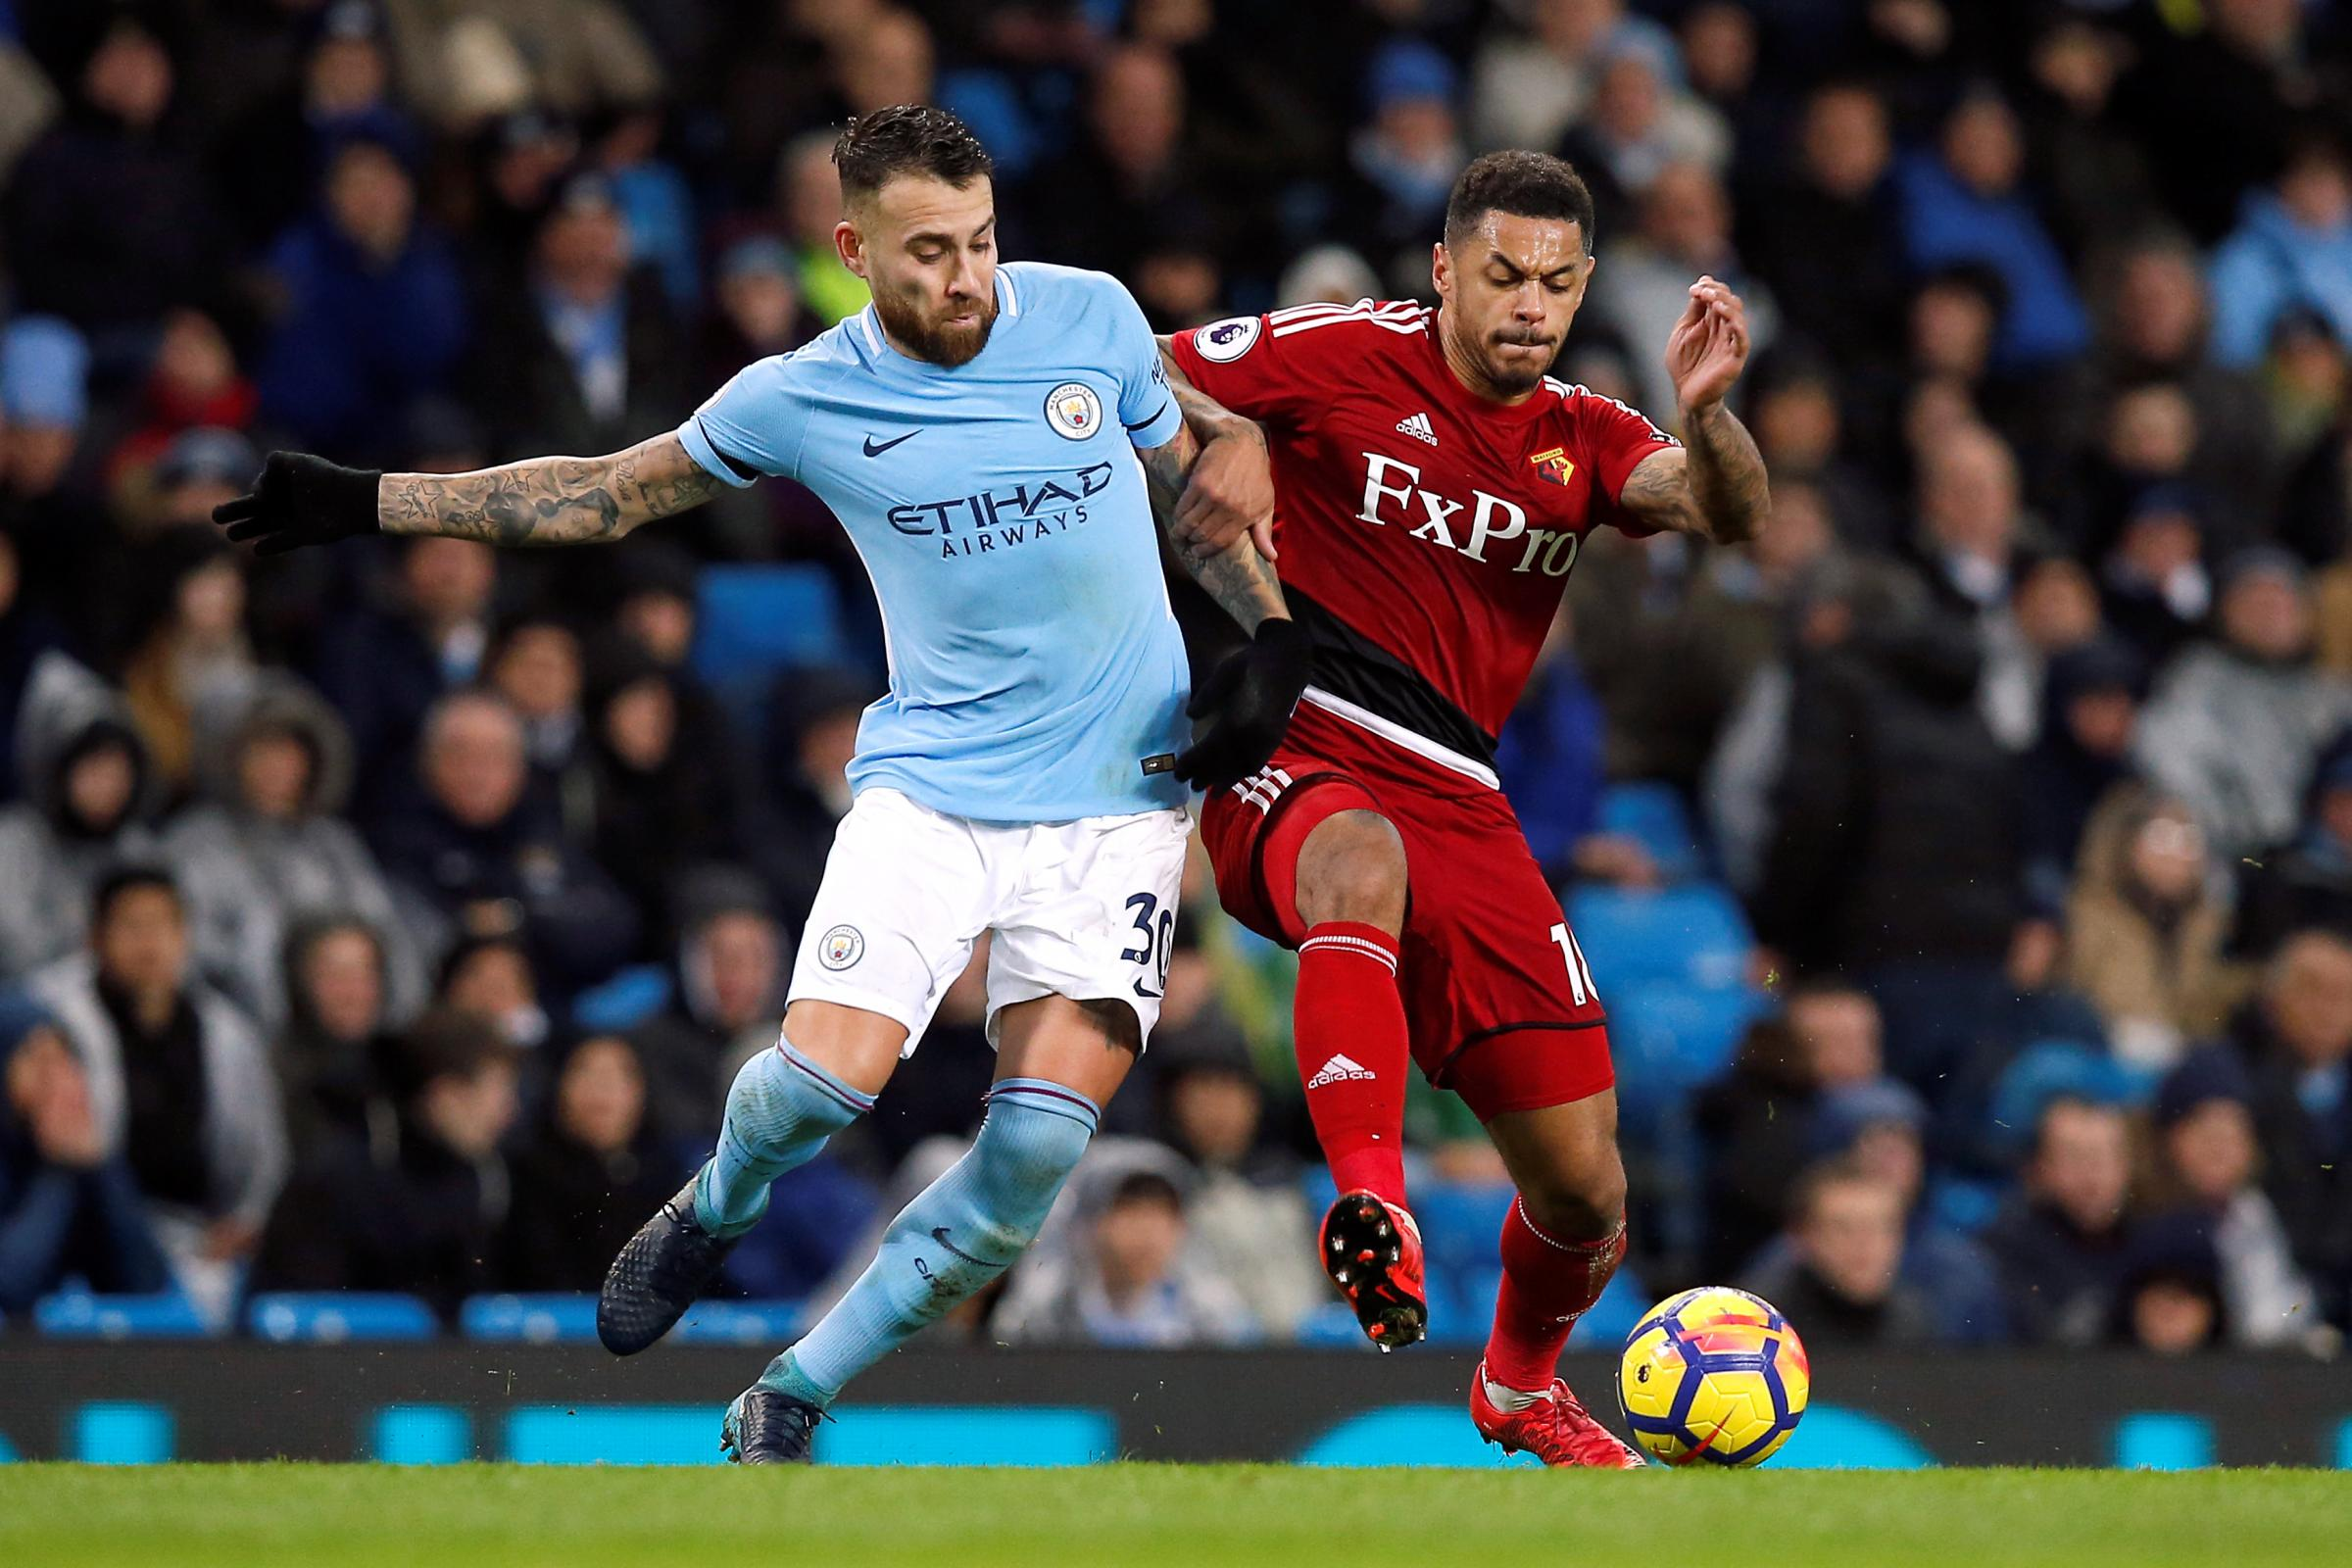 Andre Gray grabbed a consolation strike for Watford against Manchester City. Picture: Action Images